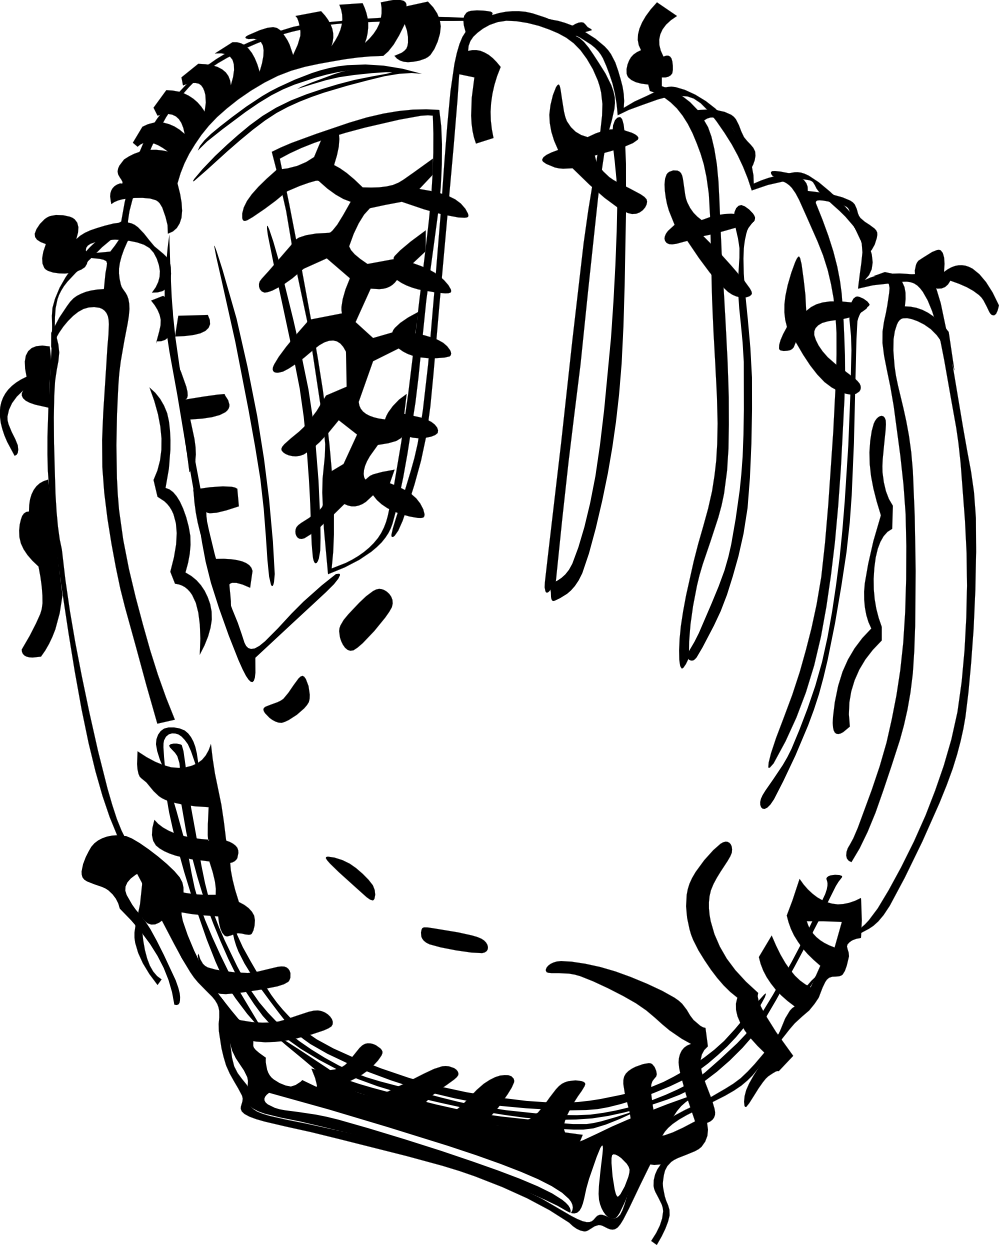 Arm in softball glove clipart svg stock Free Baseball Glove Pictures, Download Free Clip Art, Free Clip Art ... svg stock